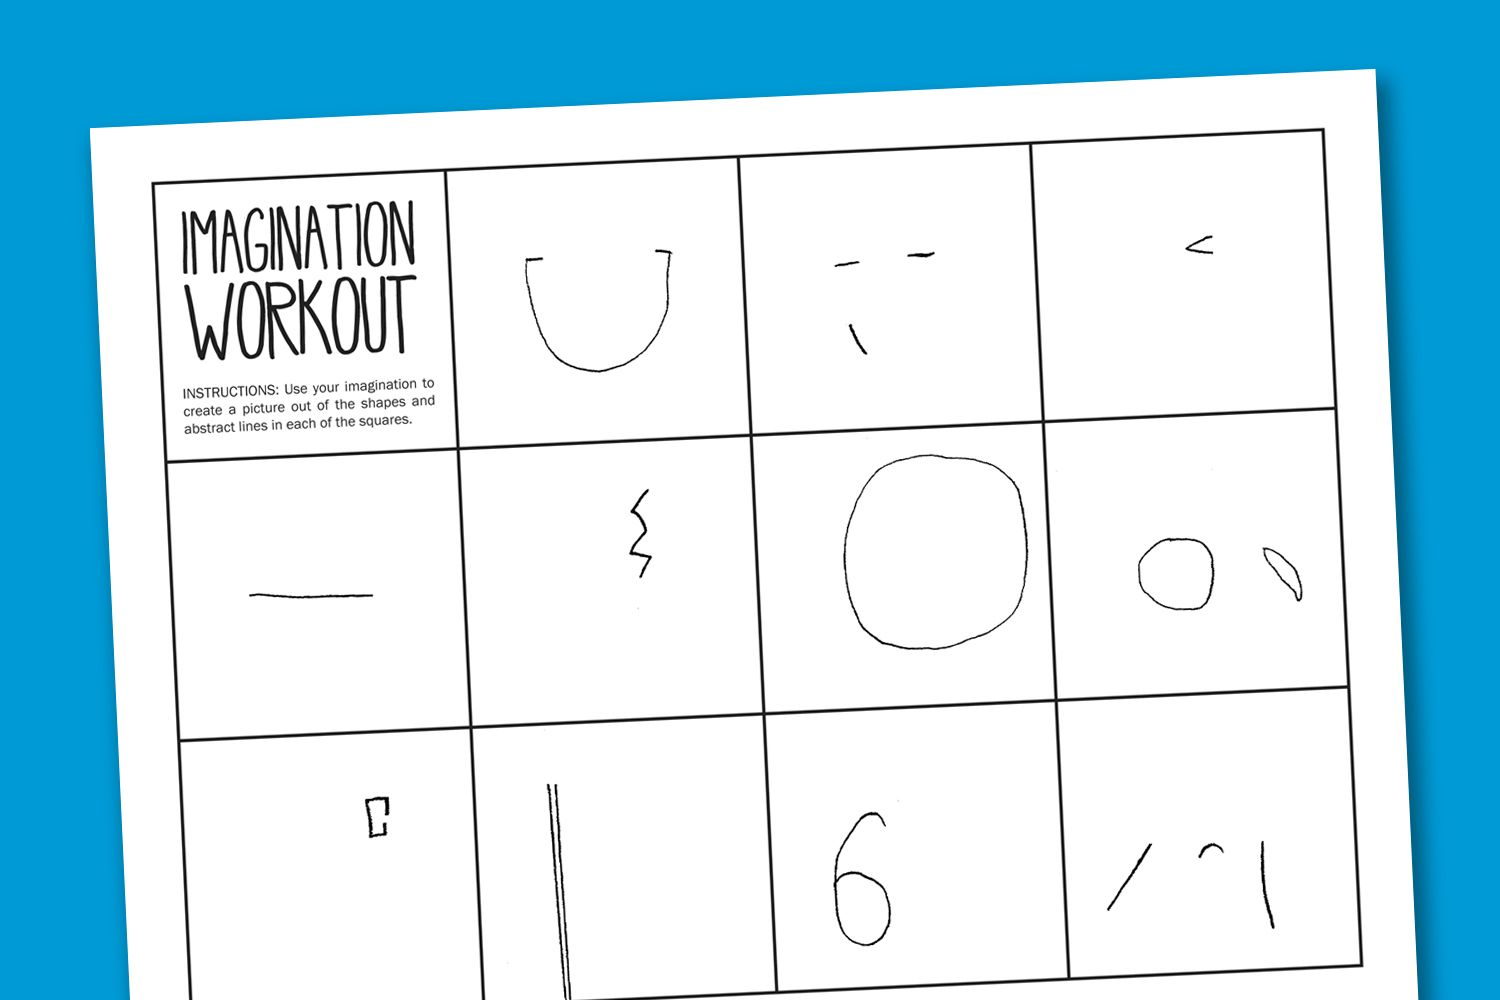 Worksheet Wednesday Imagination Workout